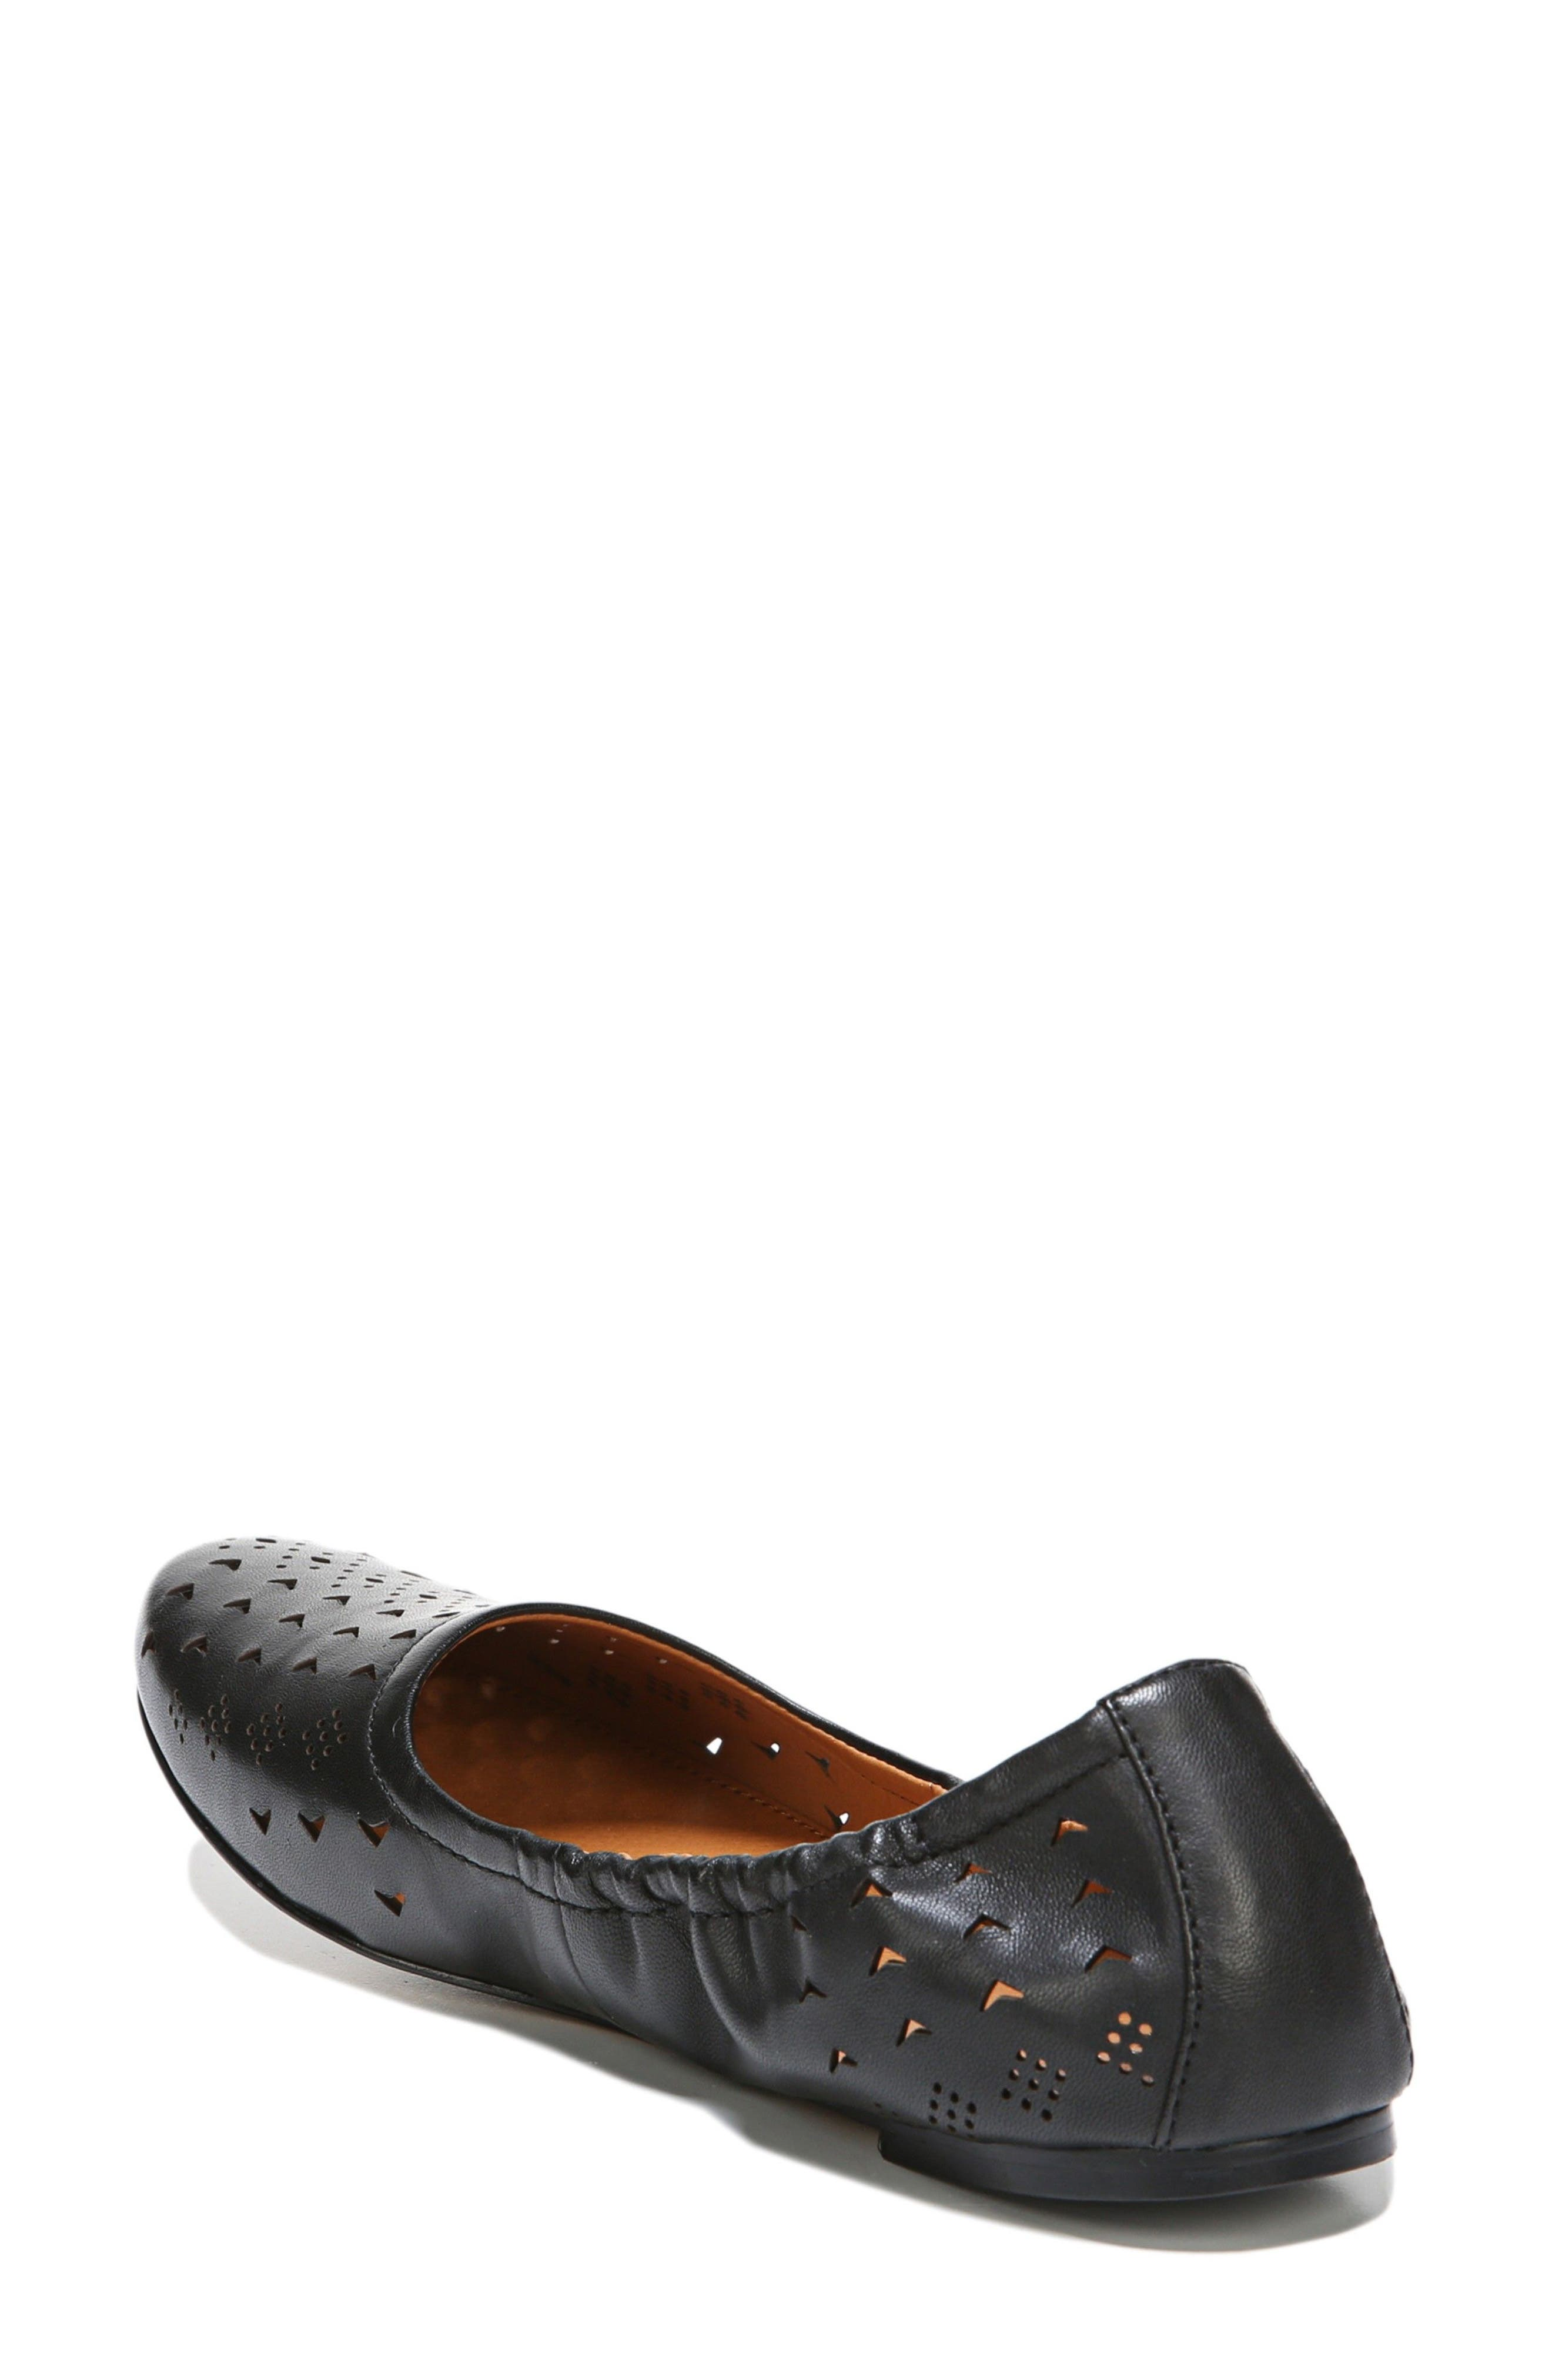 Brewer Perforated Ballet Flat,                             Alternate thumbnail 2, color,                             001